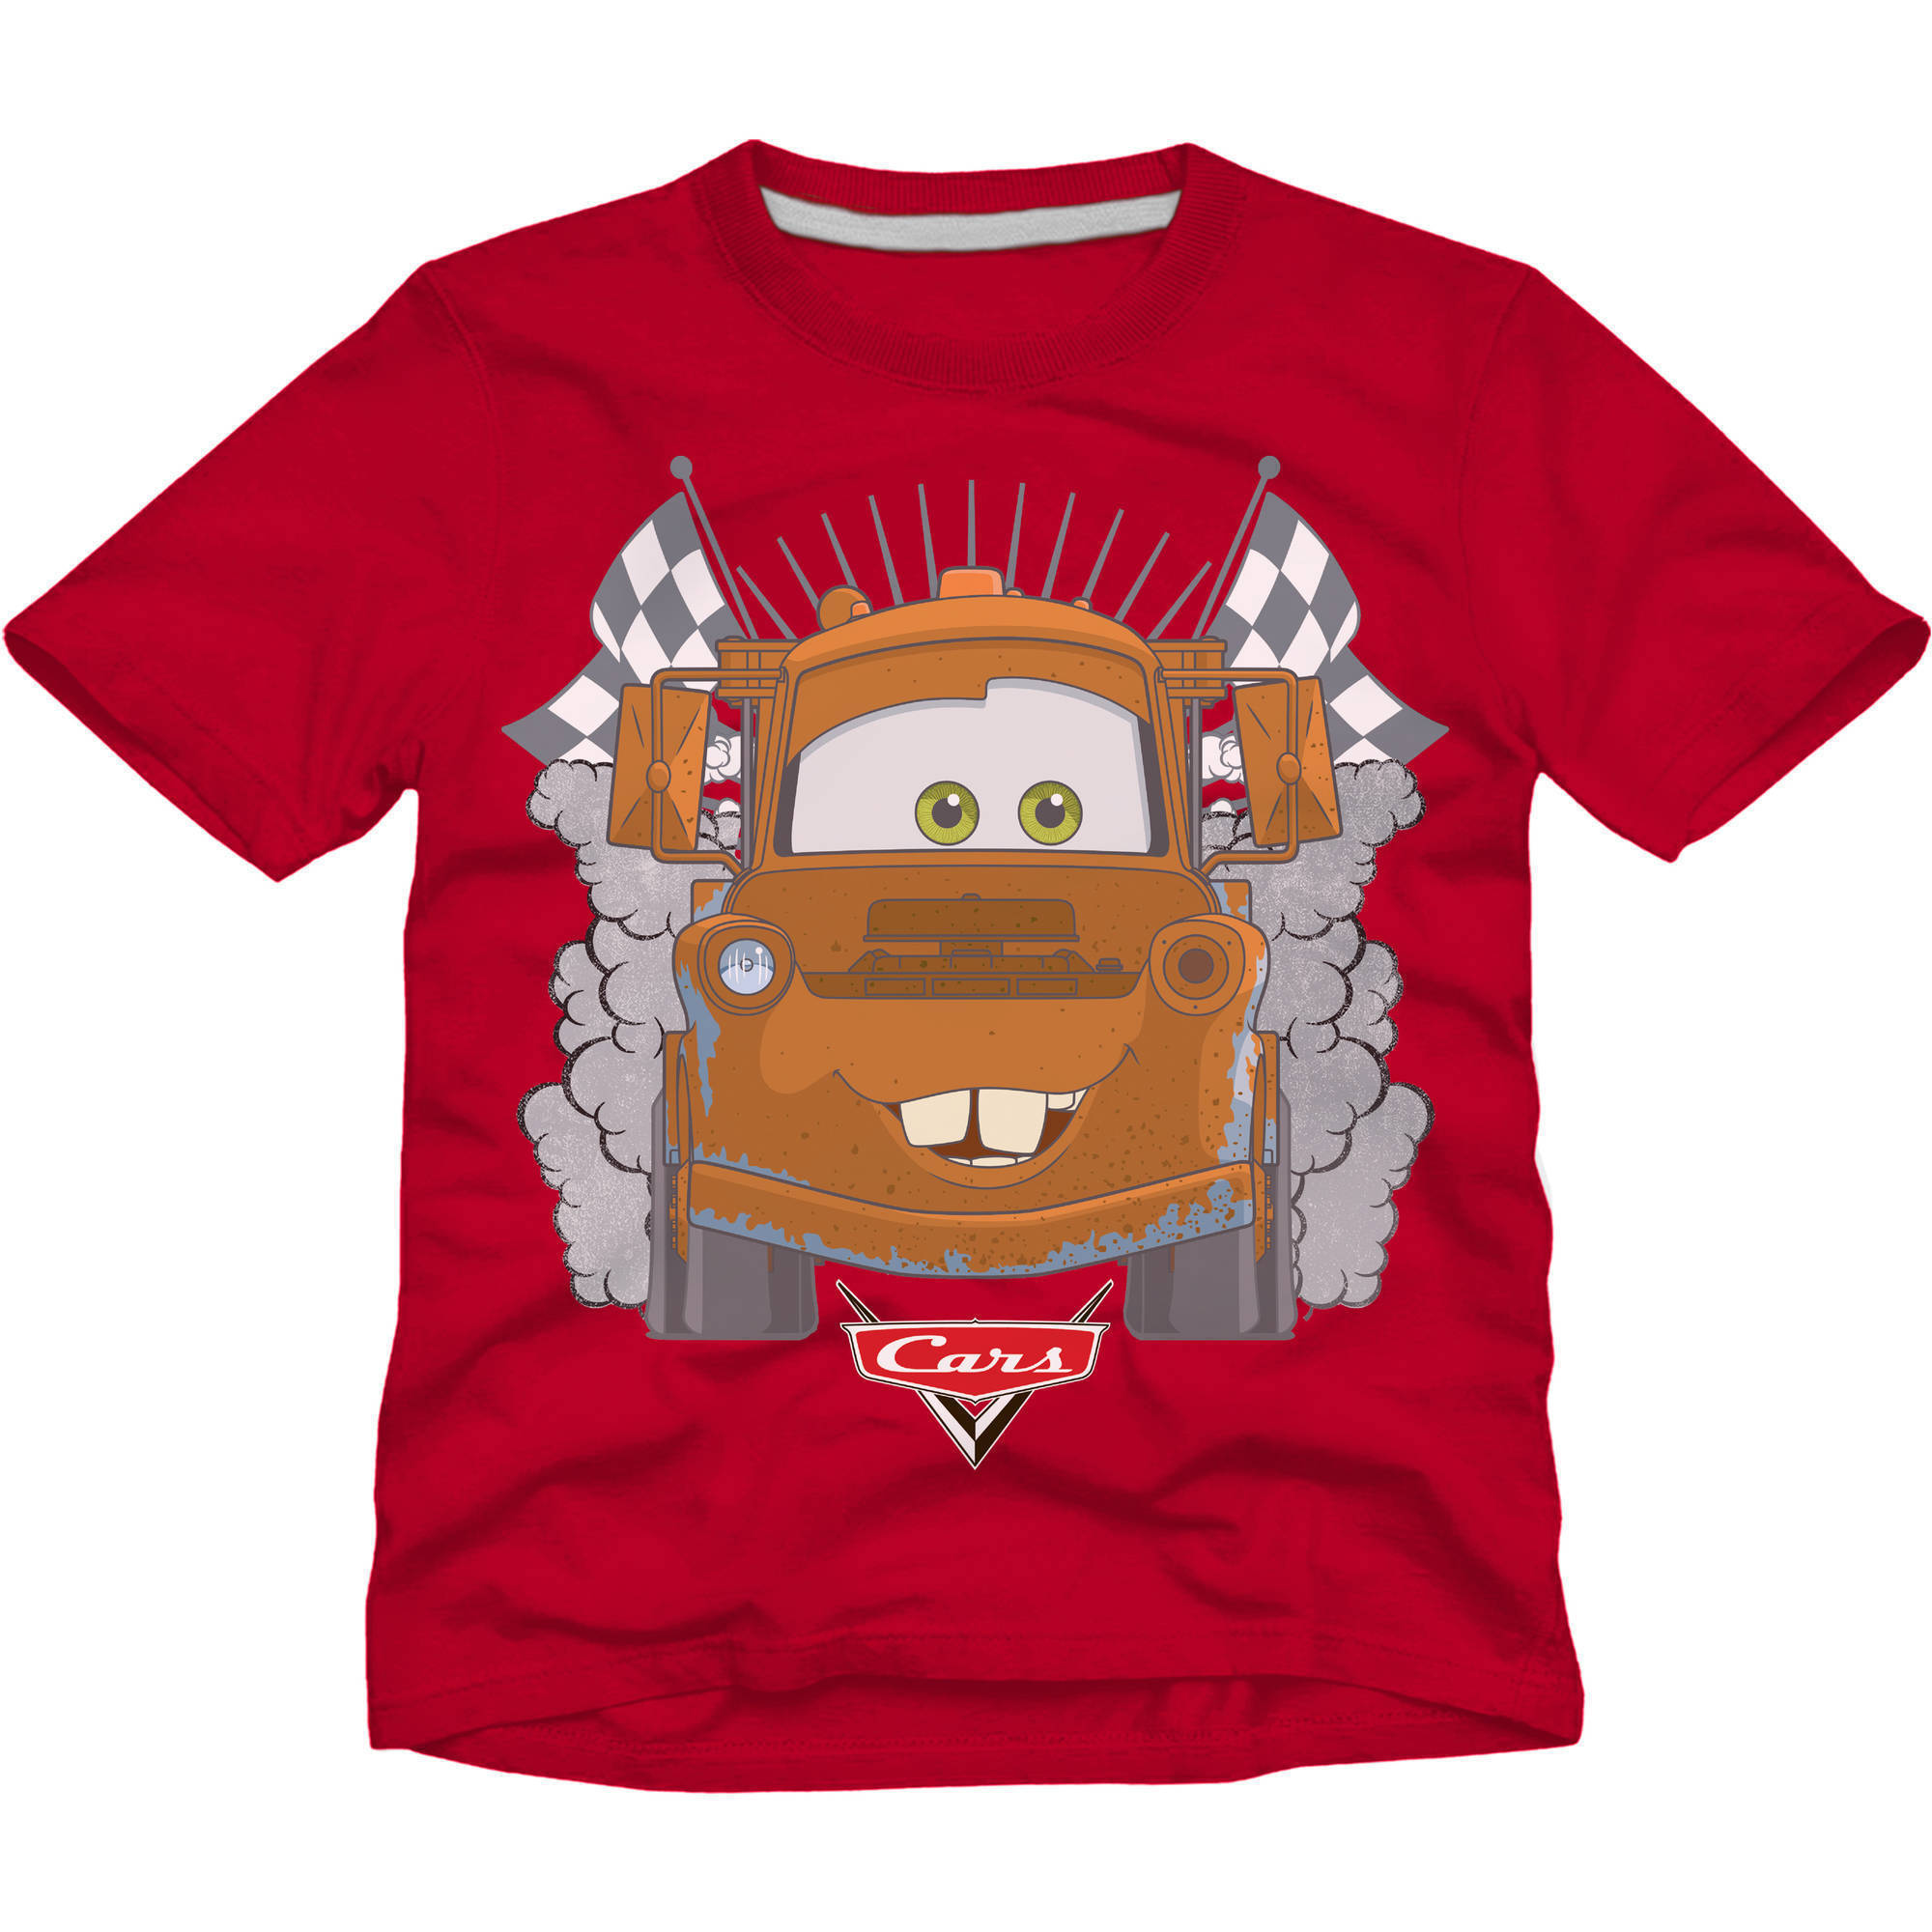 Cars Toddler Boy Short Sleeve Graphic Tee